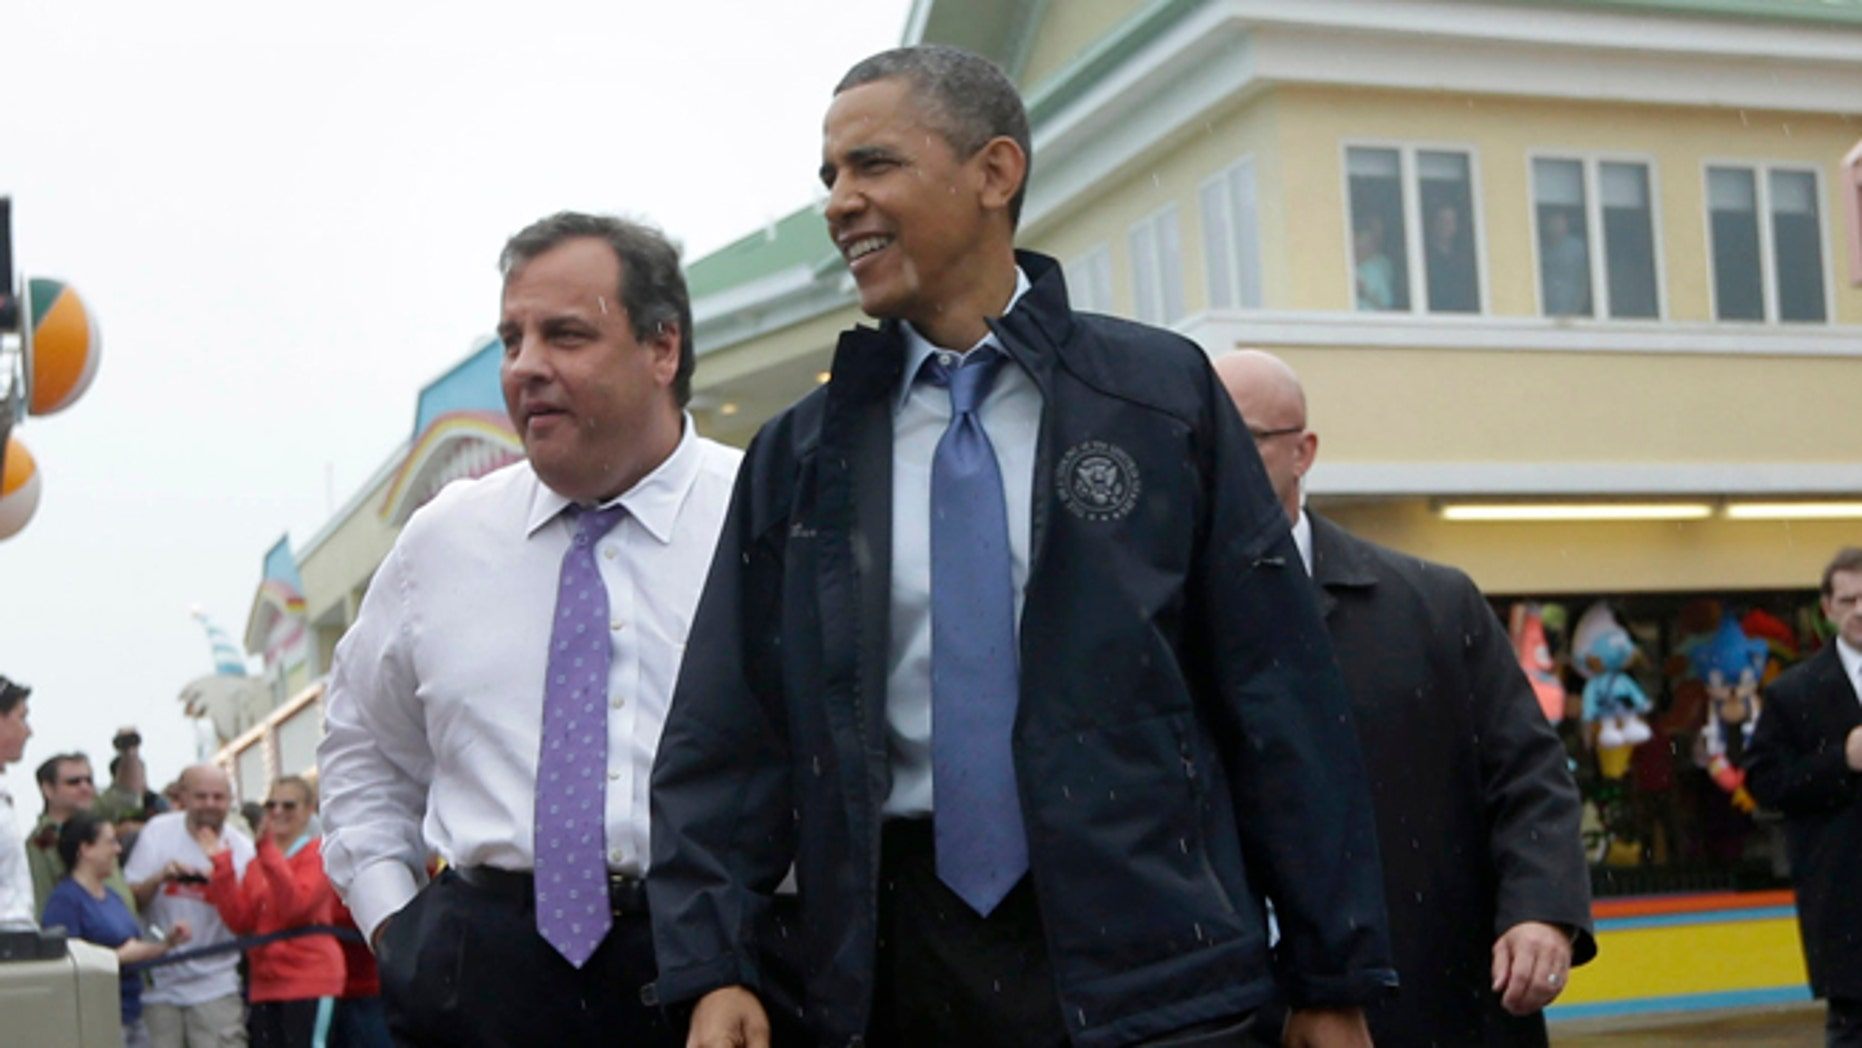 May 28, 2013.New Jersey Gov. Chris Christie and President Obama on the boardwalk in Point Pleasant, N.J., during and inspection tour of the Jersey Shore's recovery from Hurricane Sandy.